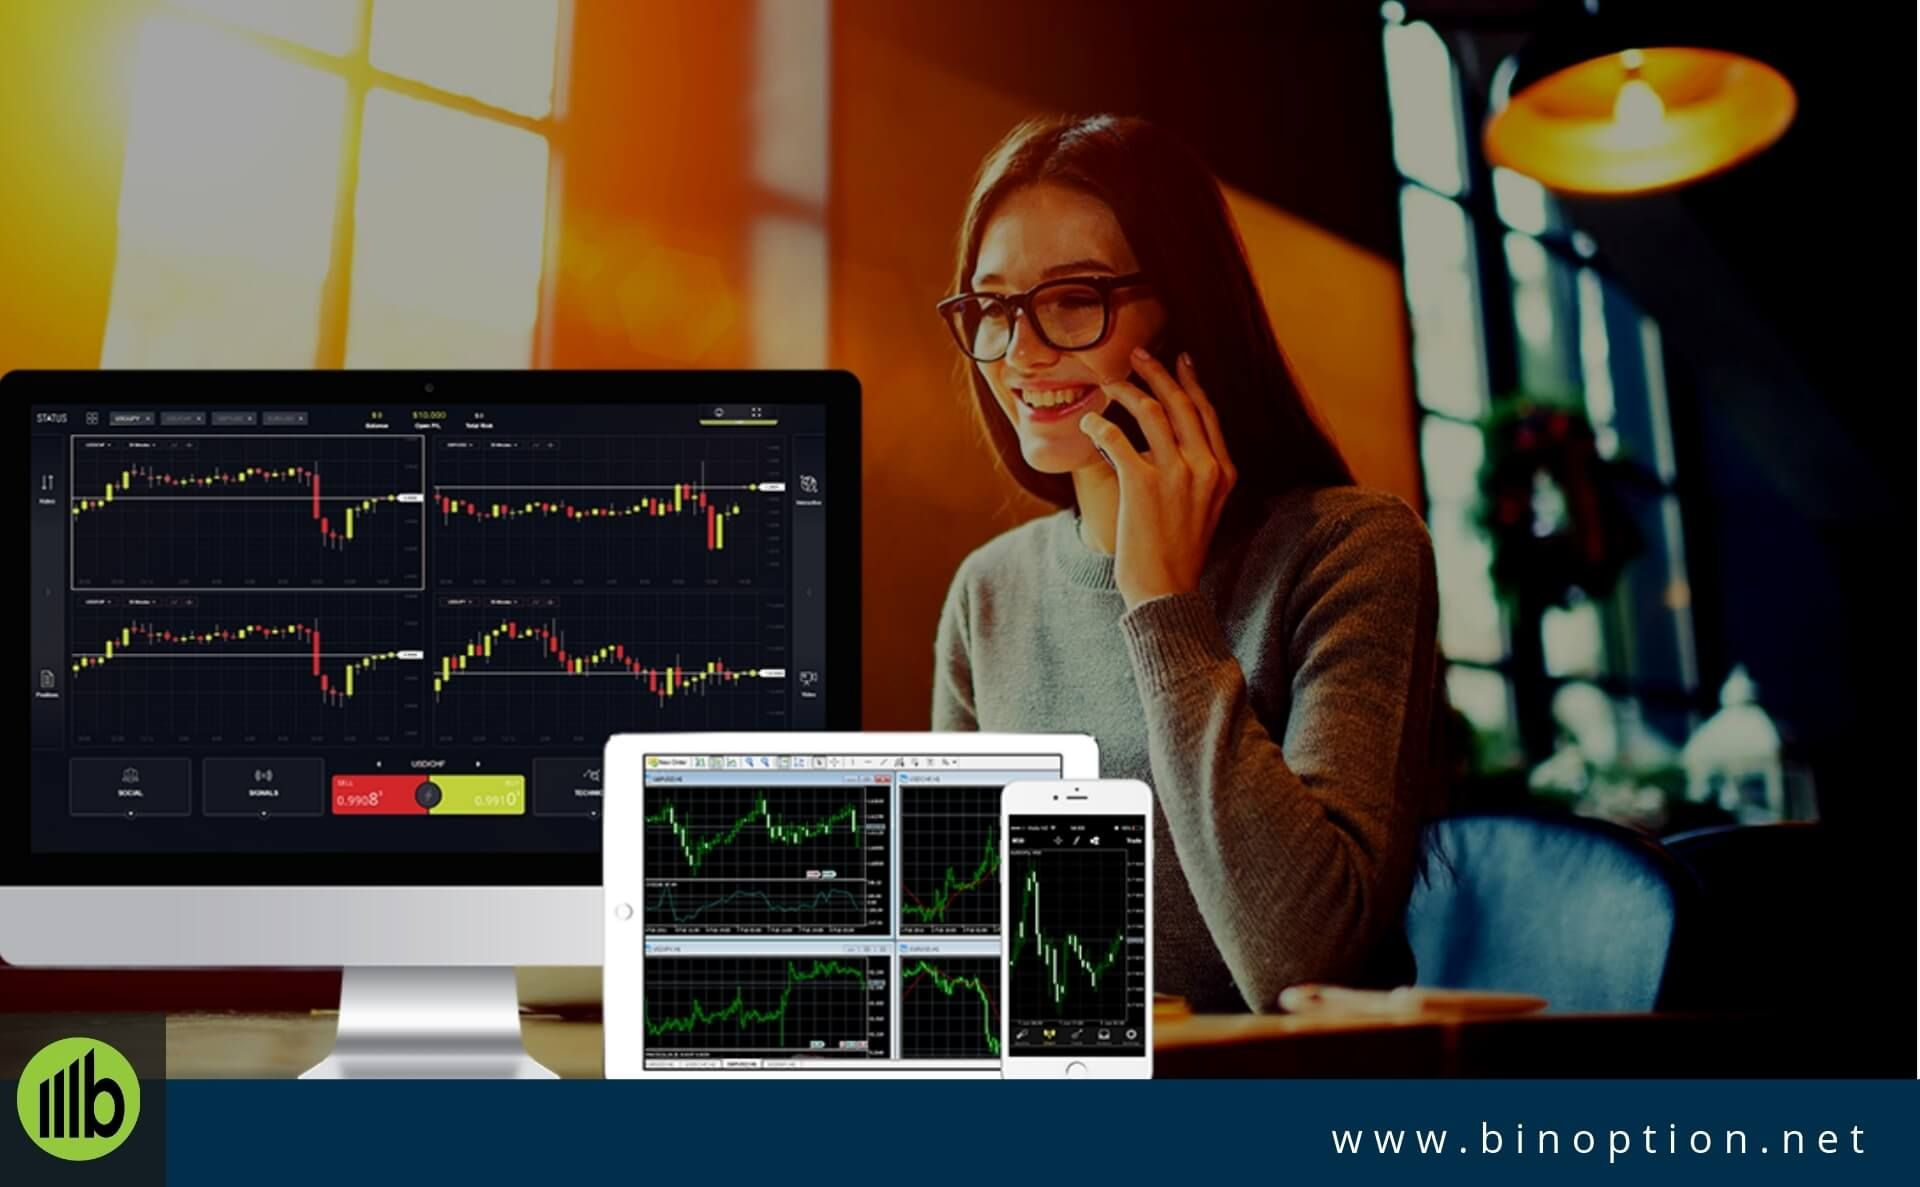 Hycm Trading Brokers Accounting Technical Analysis